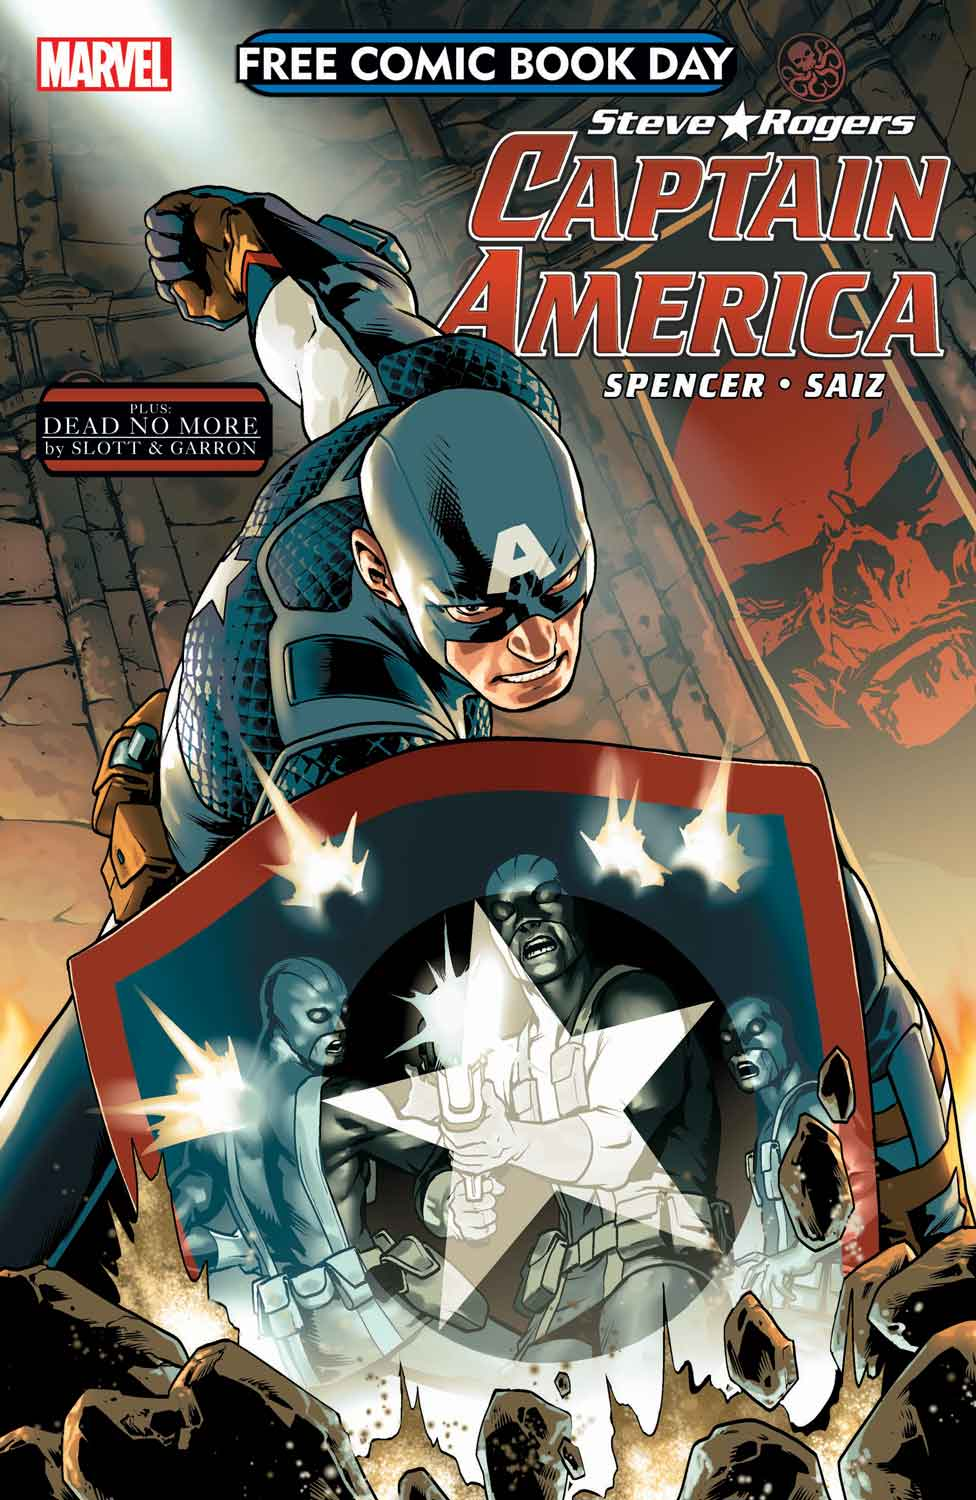 Free Comic Book Day Vol 2016 (Captain America)